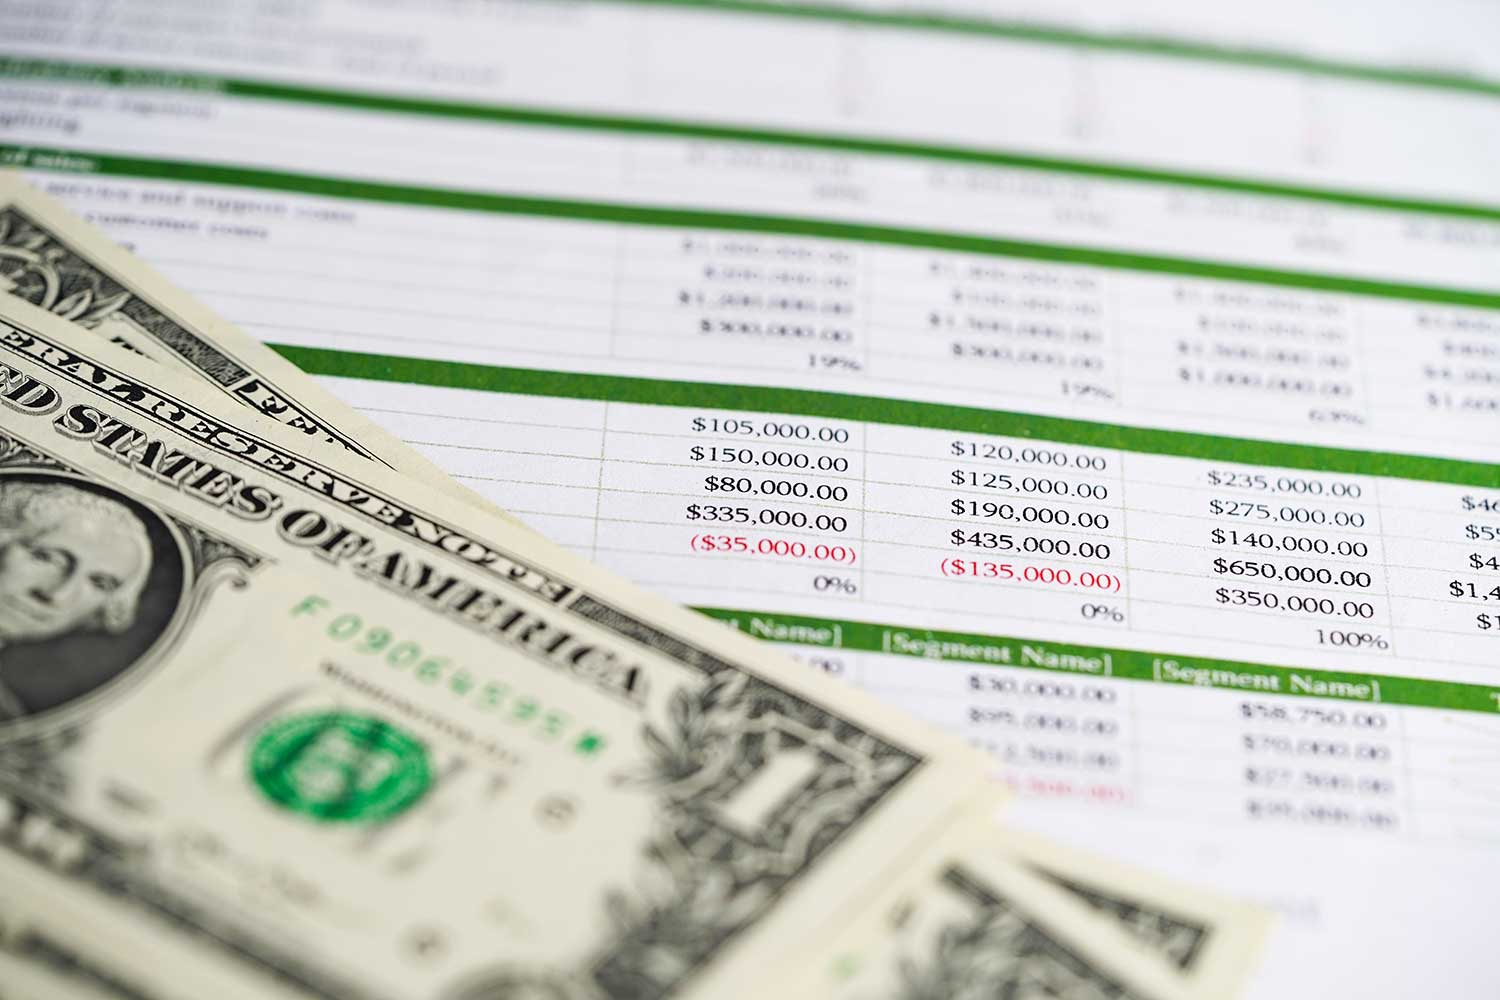 The role of Forensic Accounting for small businesses.